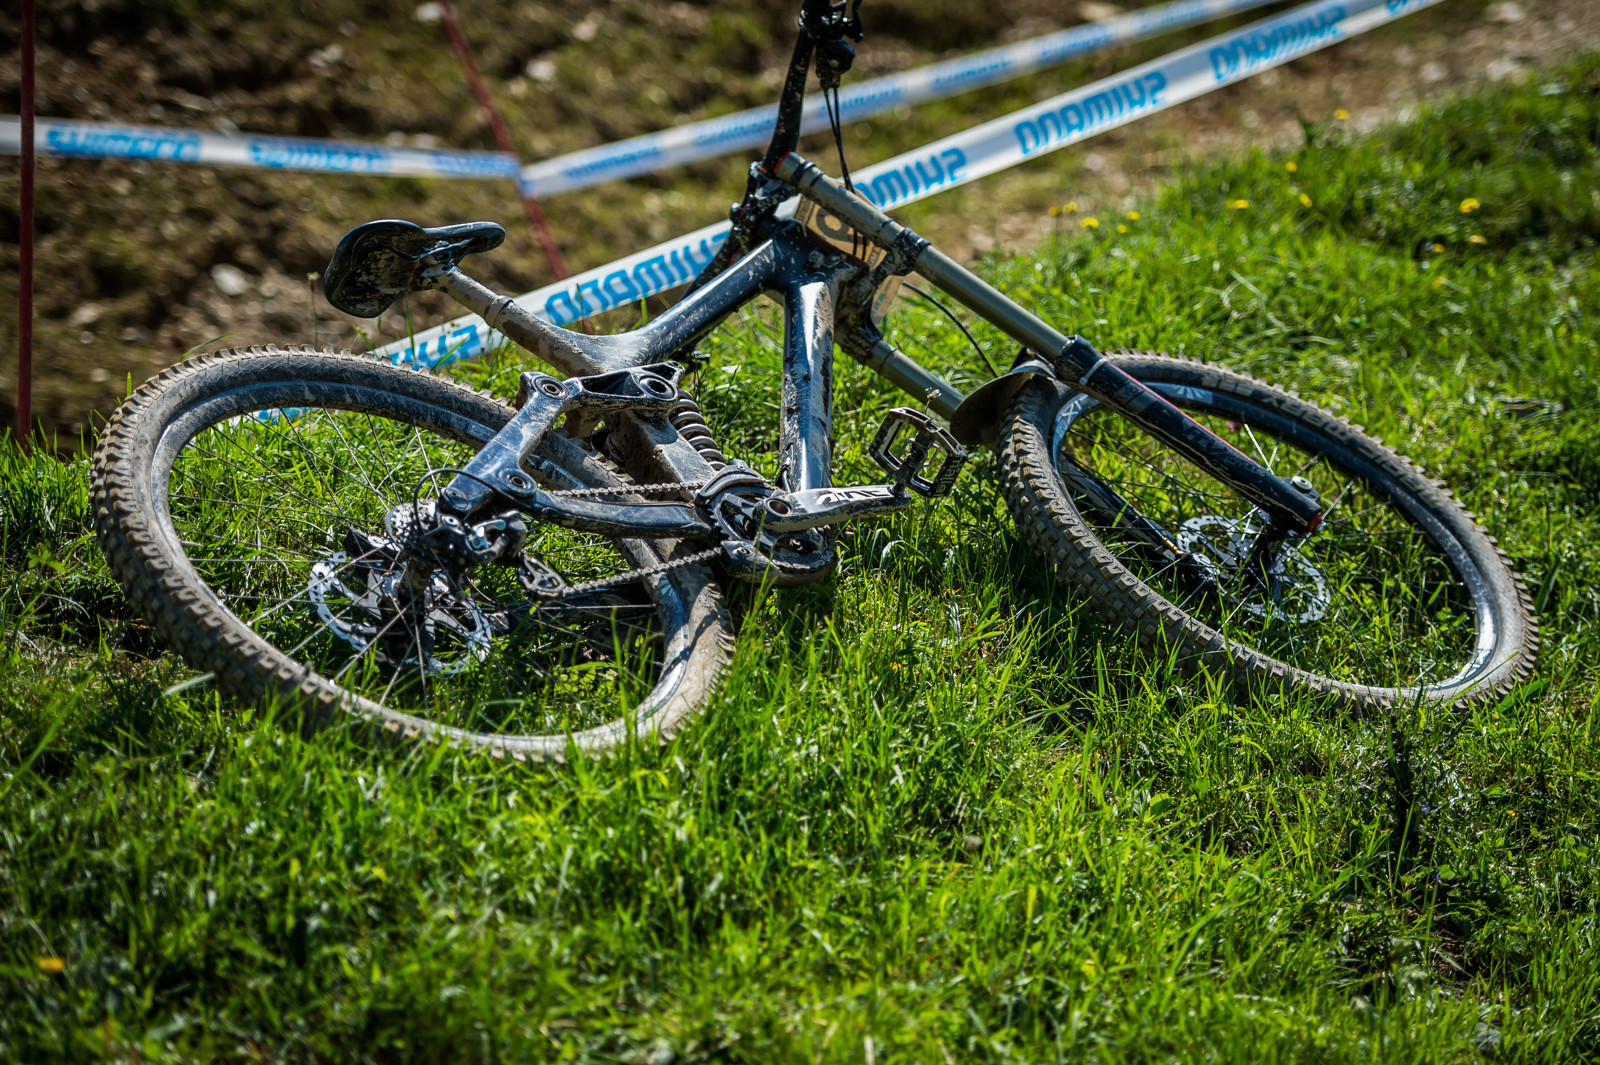 Prototype Carbon Rocky Mountain DH Bike - PIT BITS - Leogang World Cup Downhill - Mountain Biking Pictures - Vital MTB